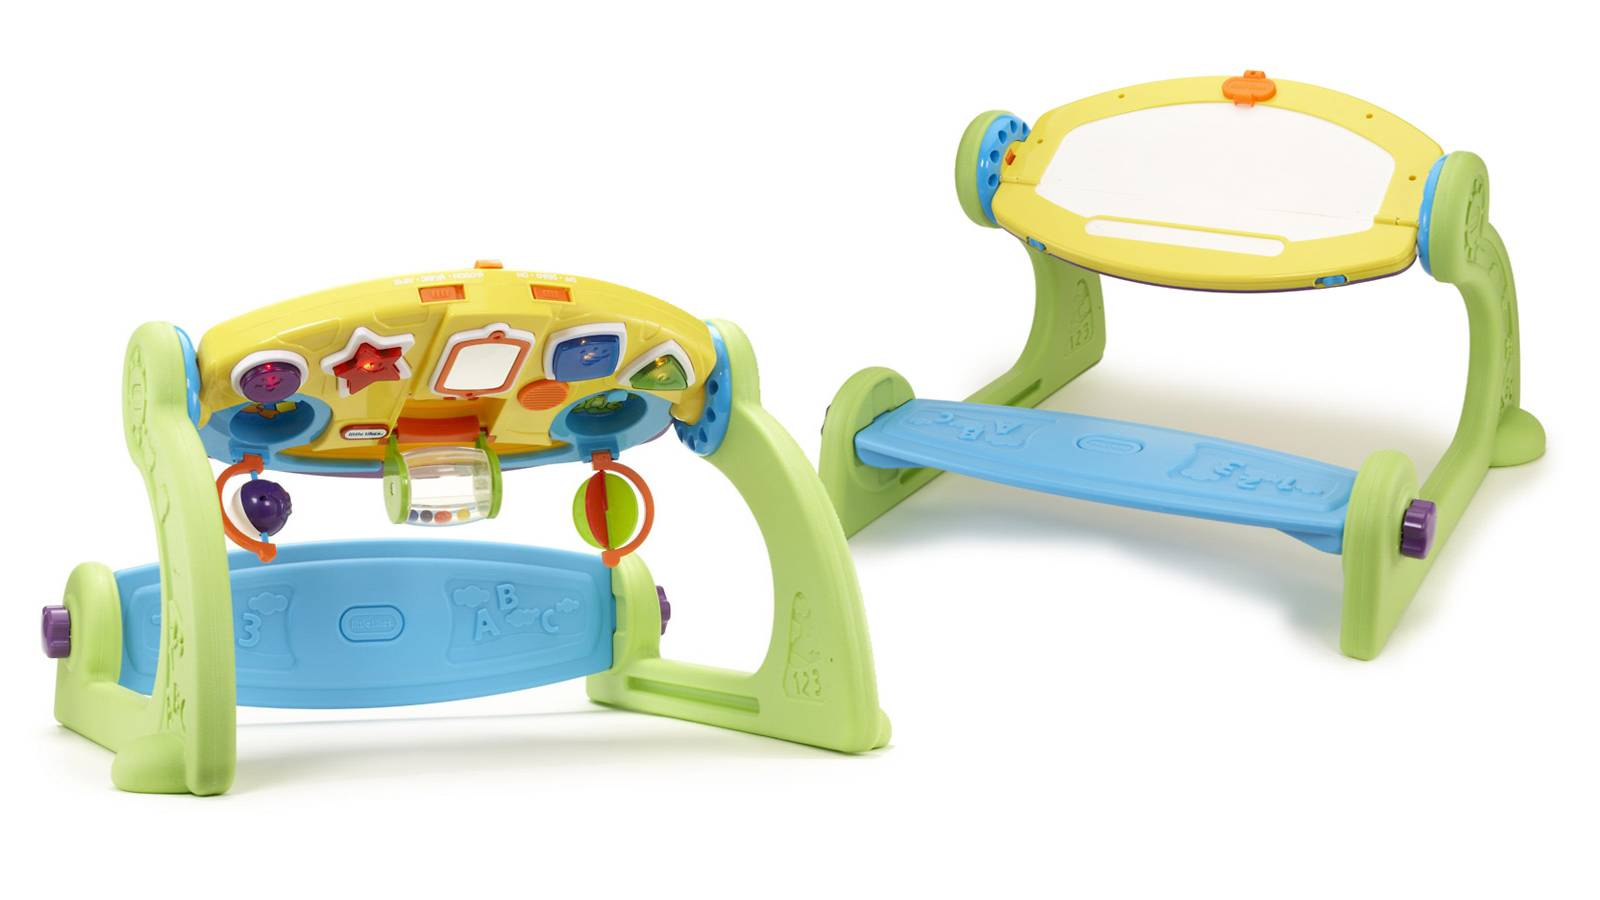 Babies-BUYERS'GUIDE-Top-activity-gyms-for-bubba-LITTLE-TIKES